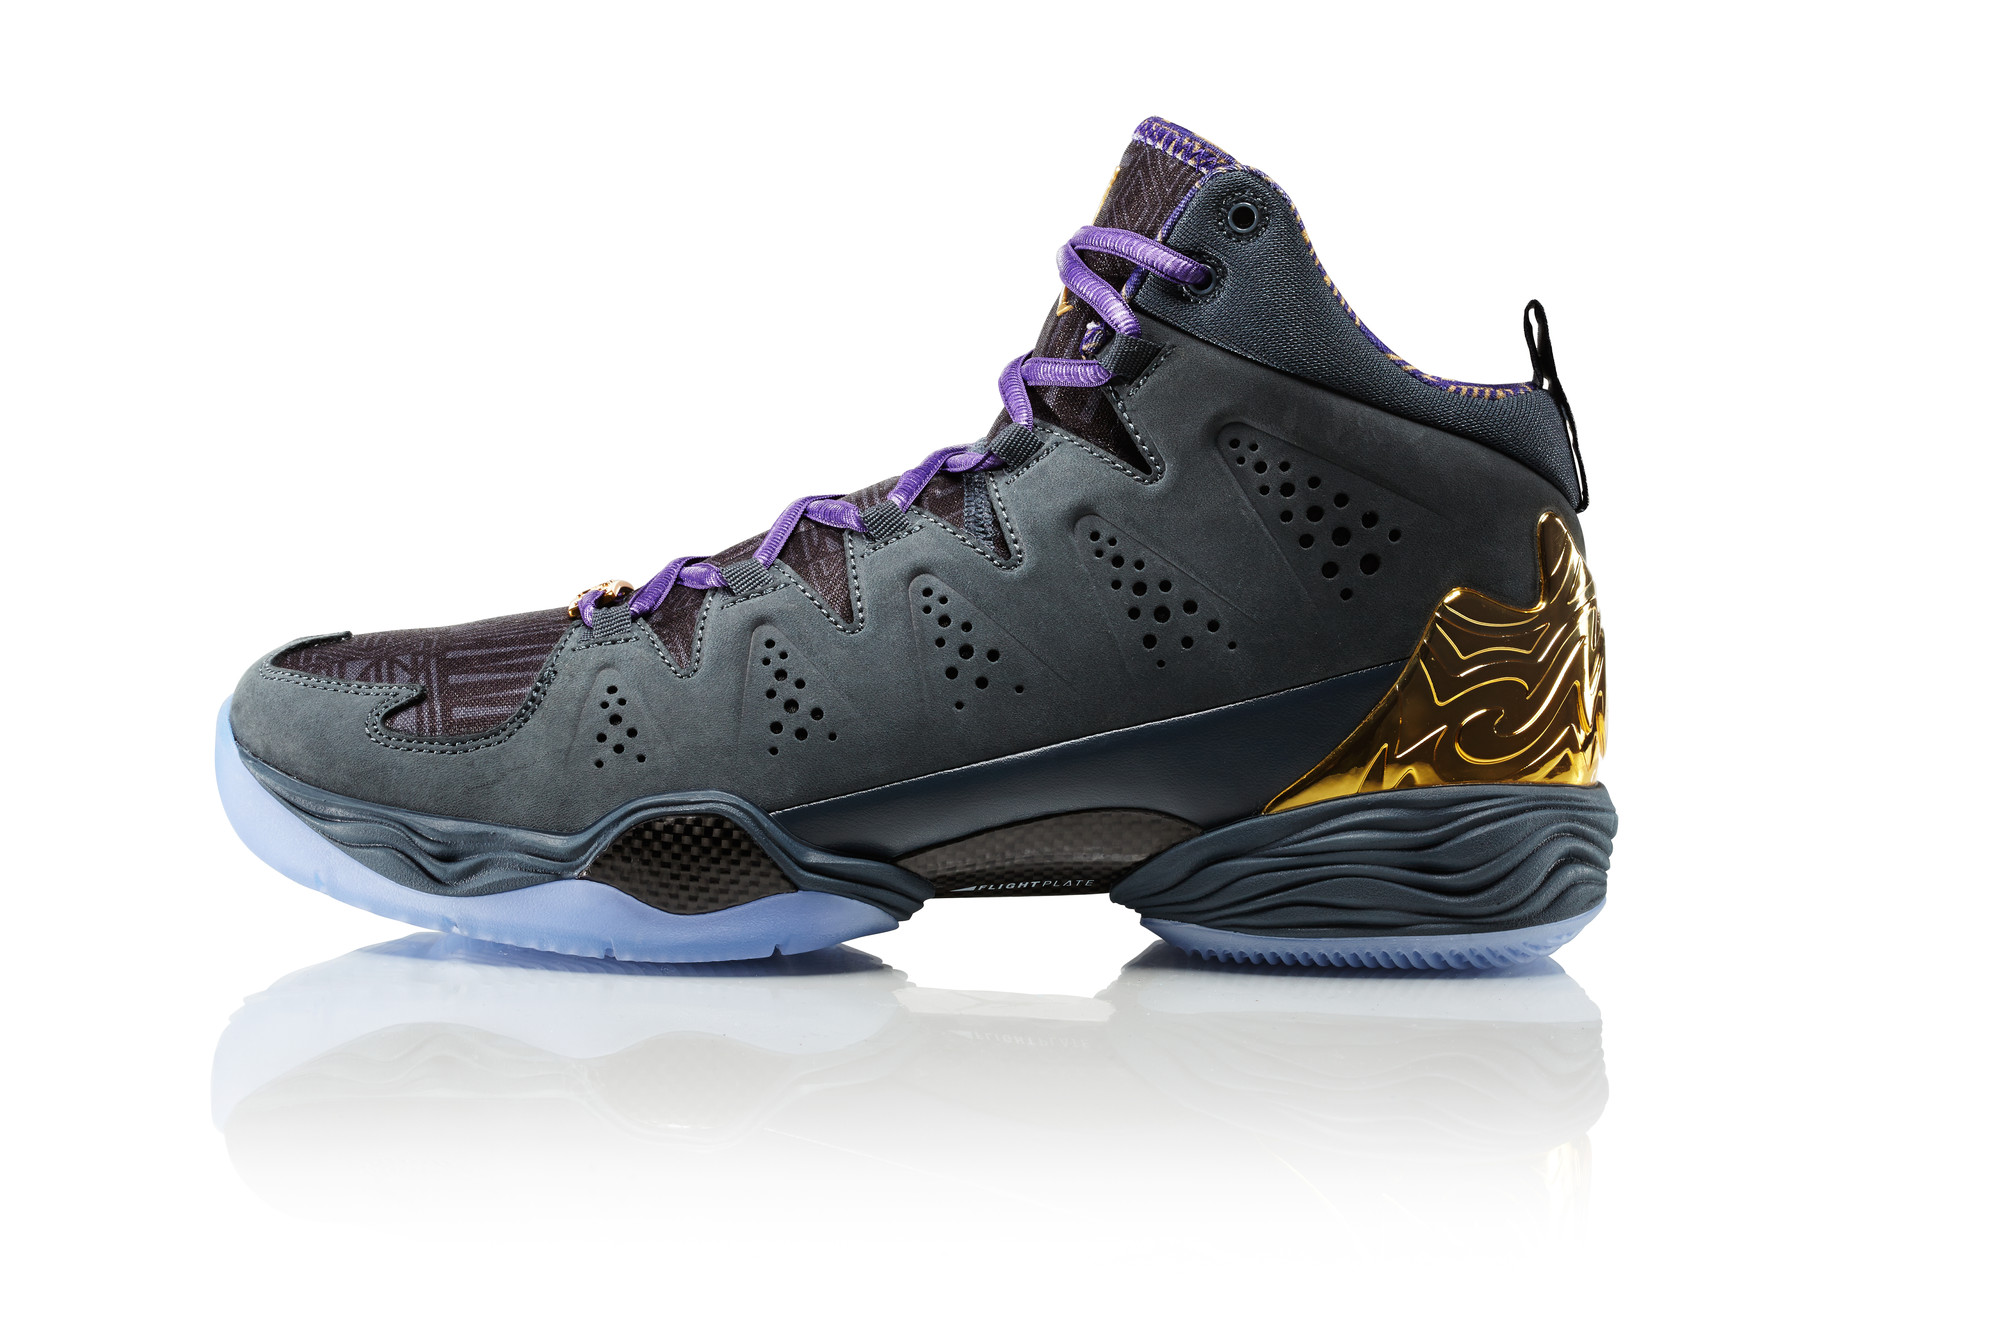 NIKE_SP14_BHM_BASKETBALL_3_0005_original